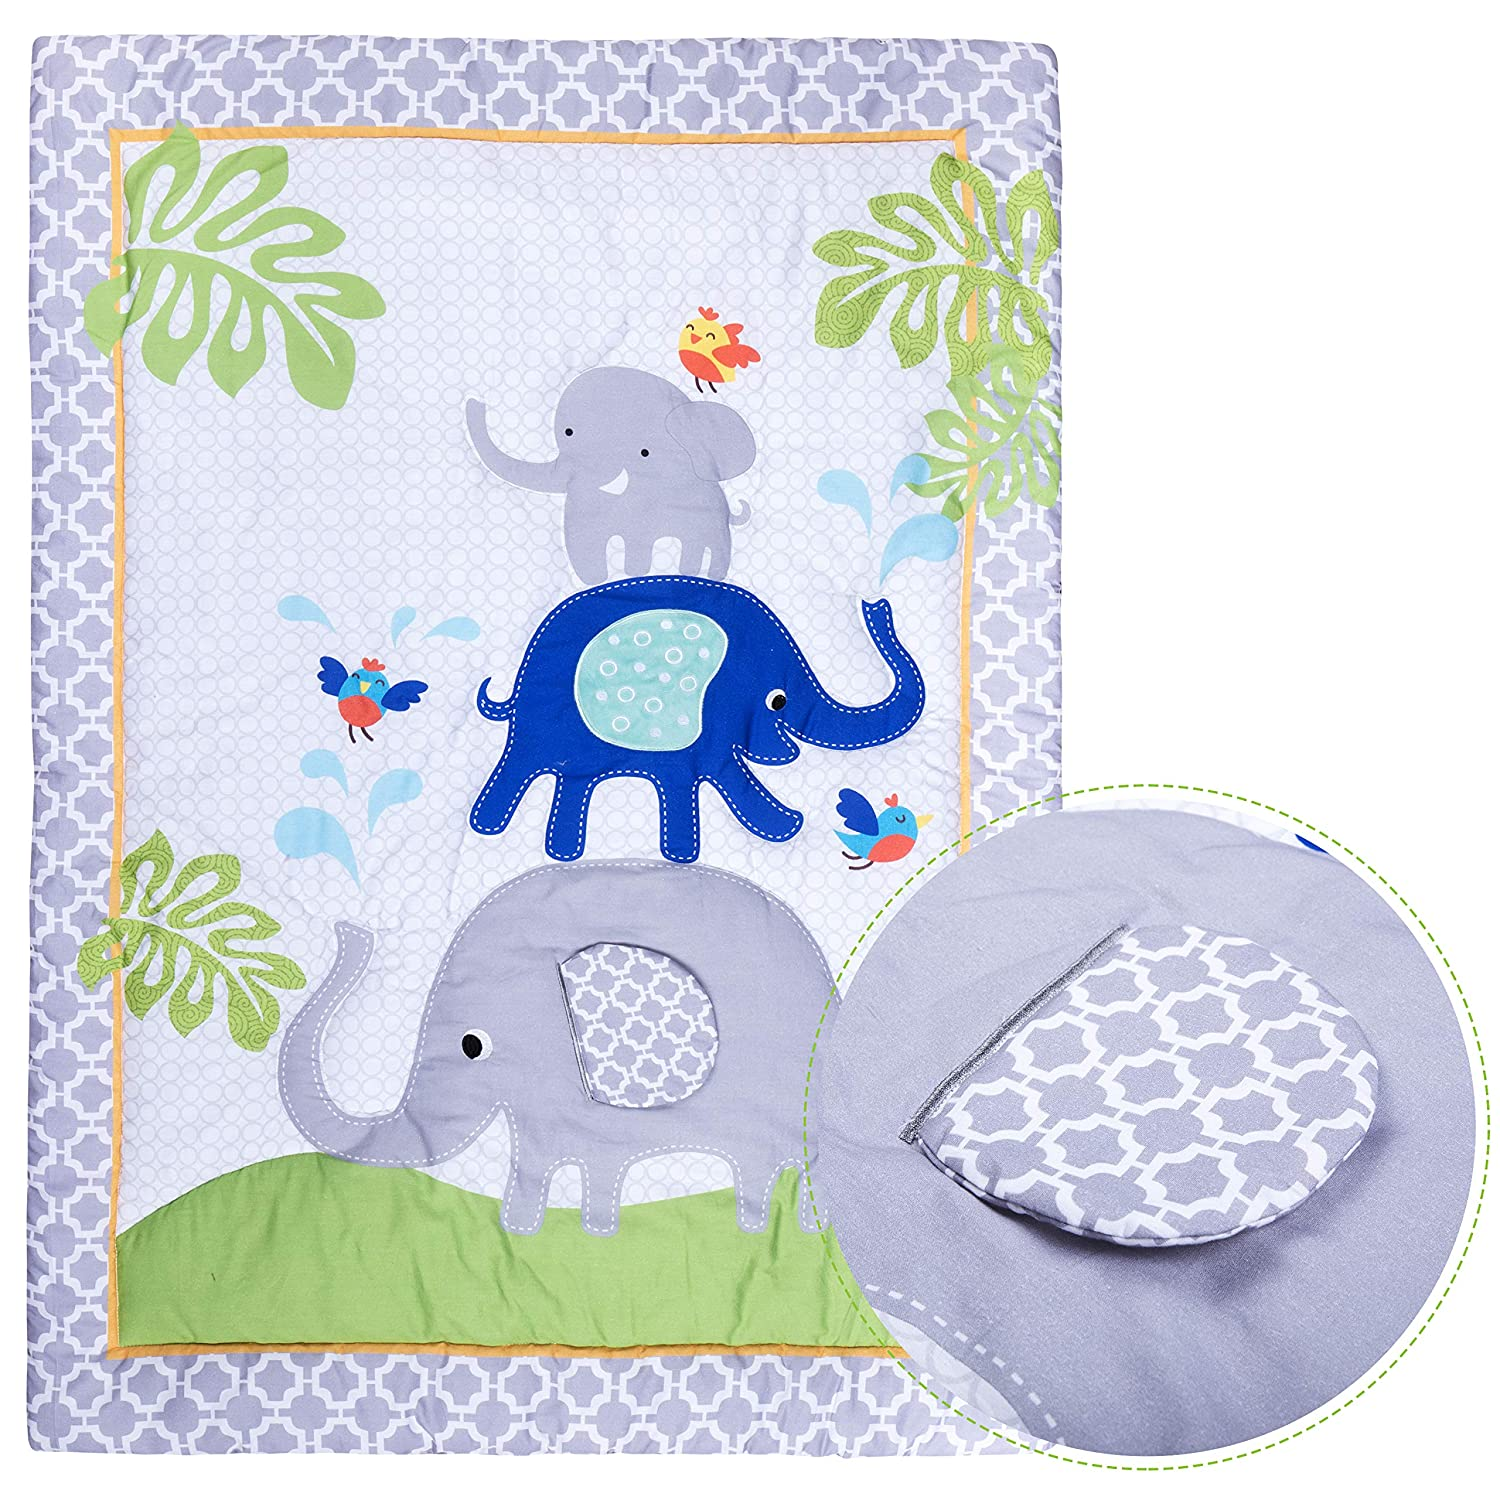 100% Cotton Premium Nursery Bedding: 6 Piece Baby Boy/Girl Elephant Crib Satz (Greyblue)